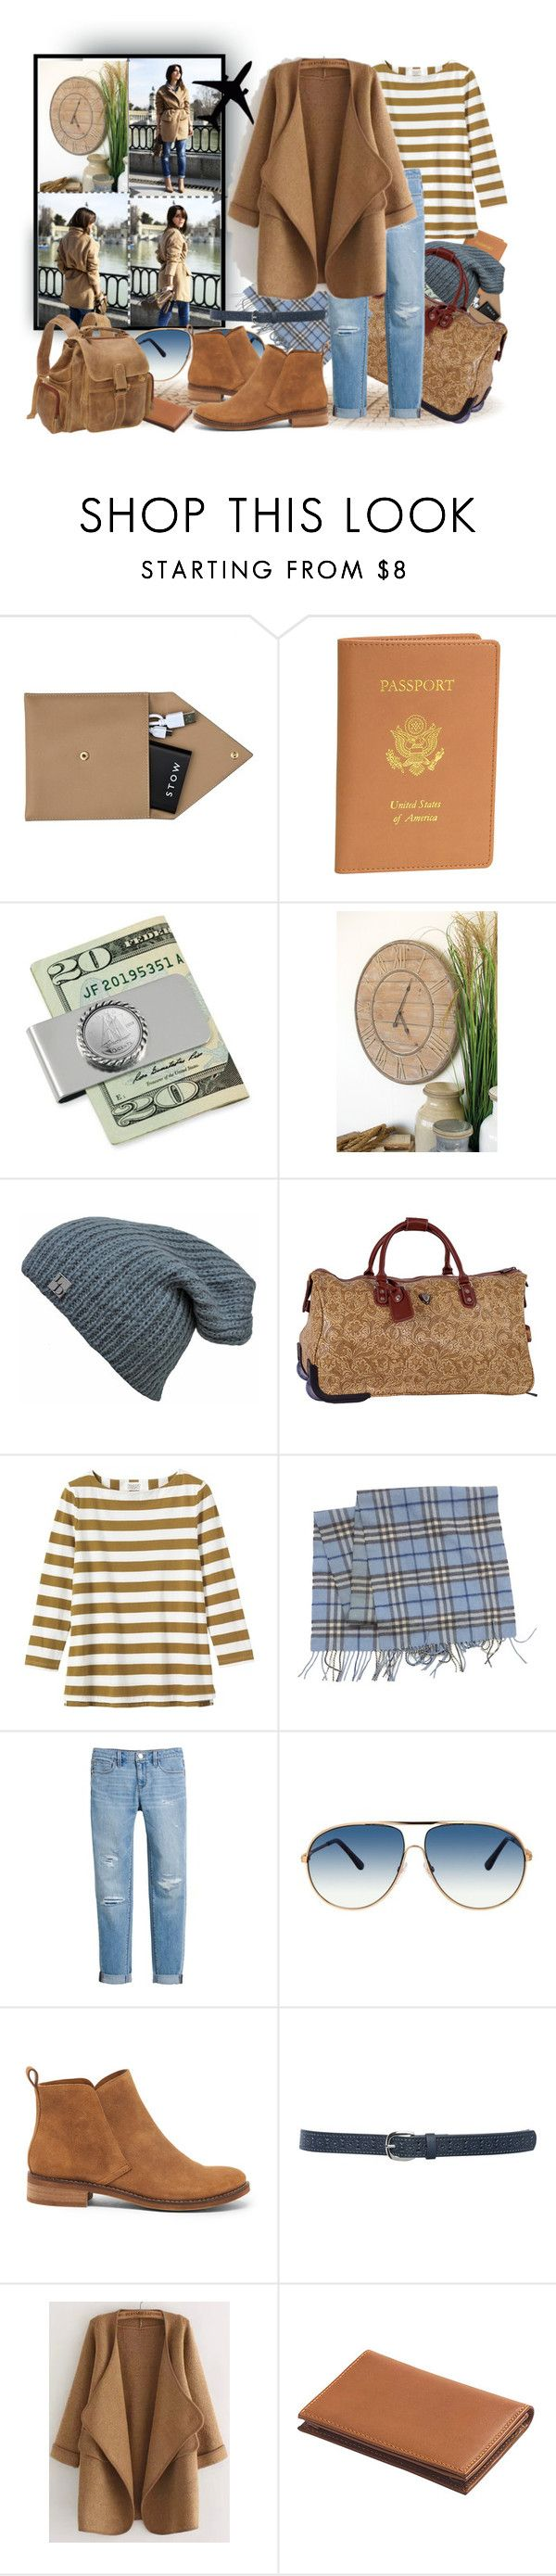 """The color of the desert and the sea"" by tasha1973 ❤ liked on Polyvore featuring STOW, Royce Leather, American Coin Treasures, Thos. Baker, CalPak, Toast, Burberry, White House Black Market, Tom Ford and Lucky Brand"